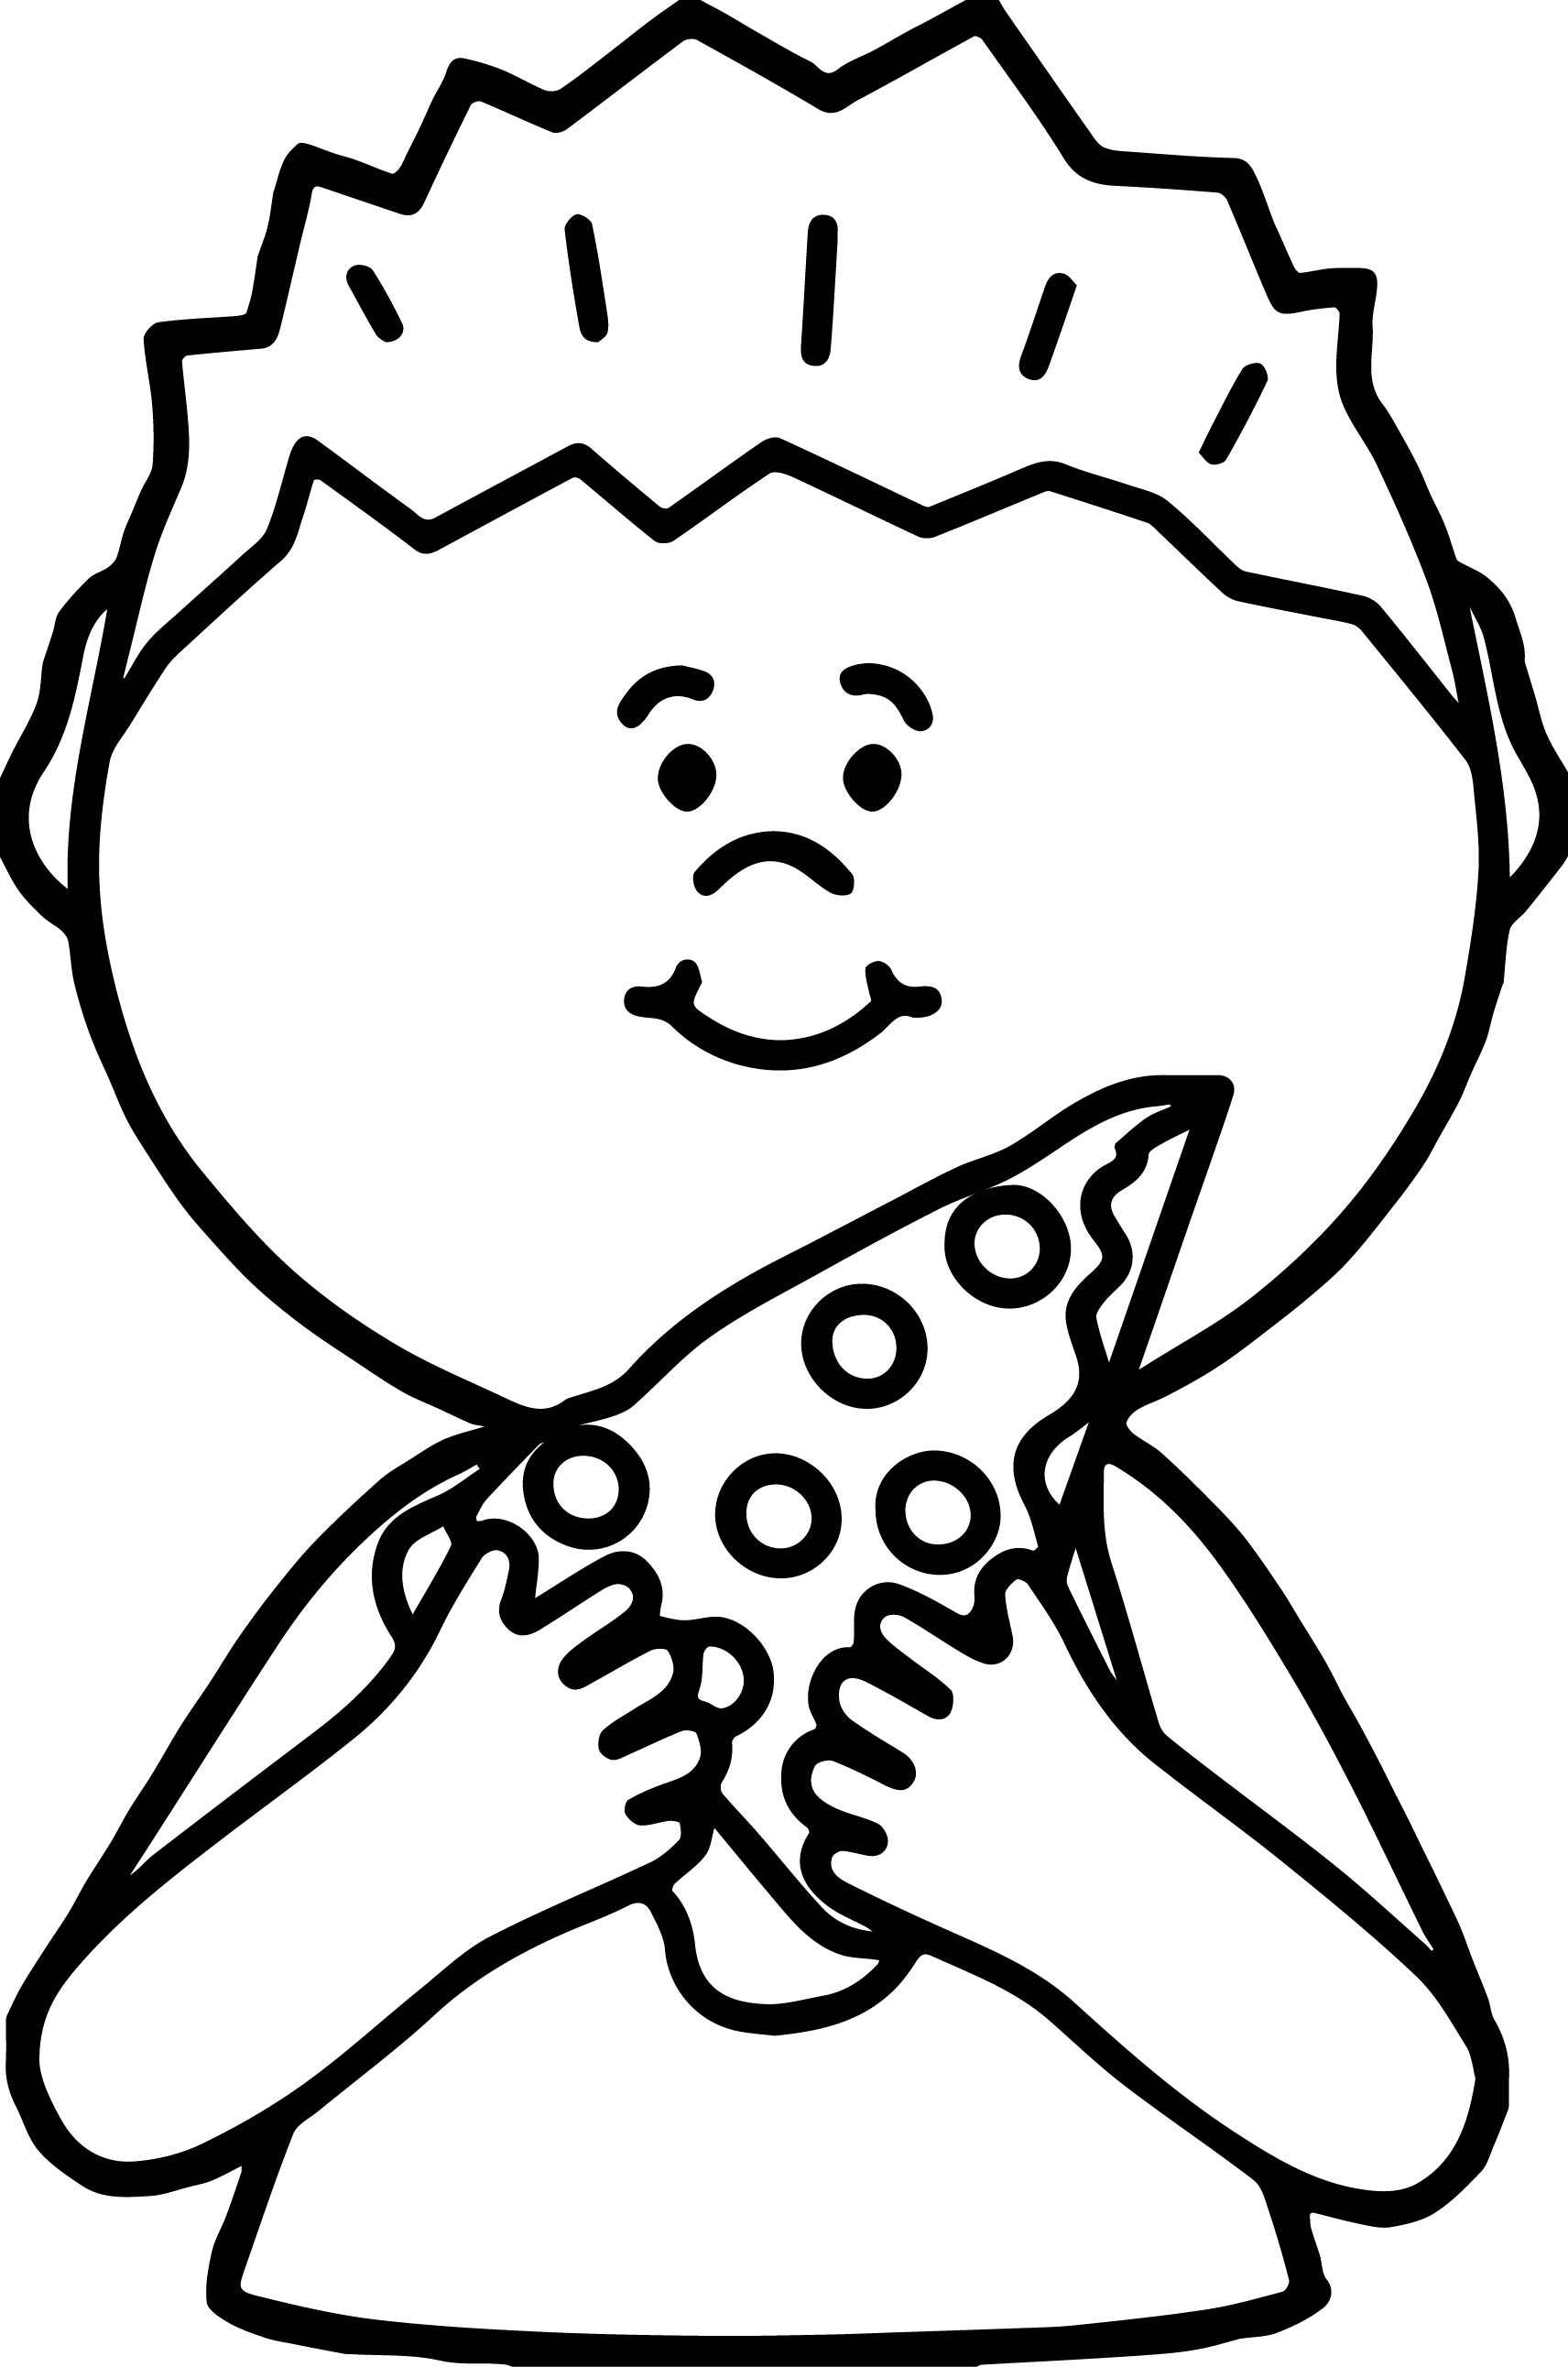 boy eating pizza coloring page wecoloringpage